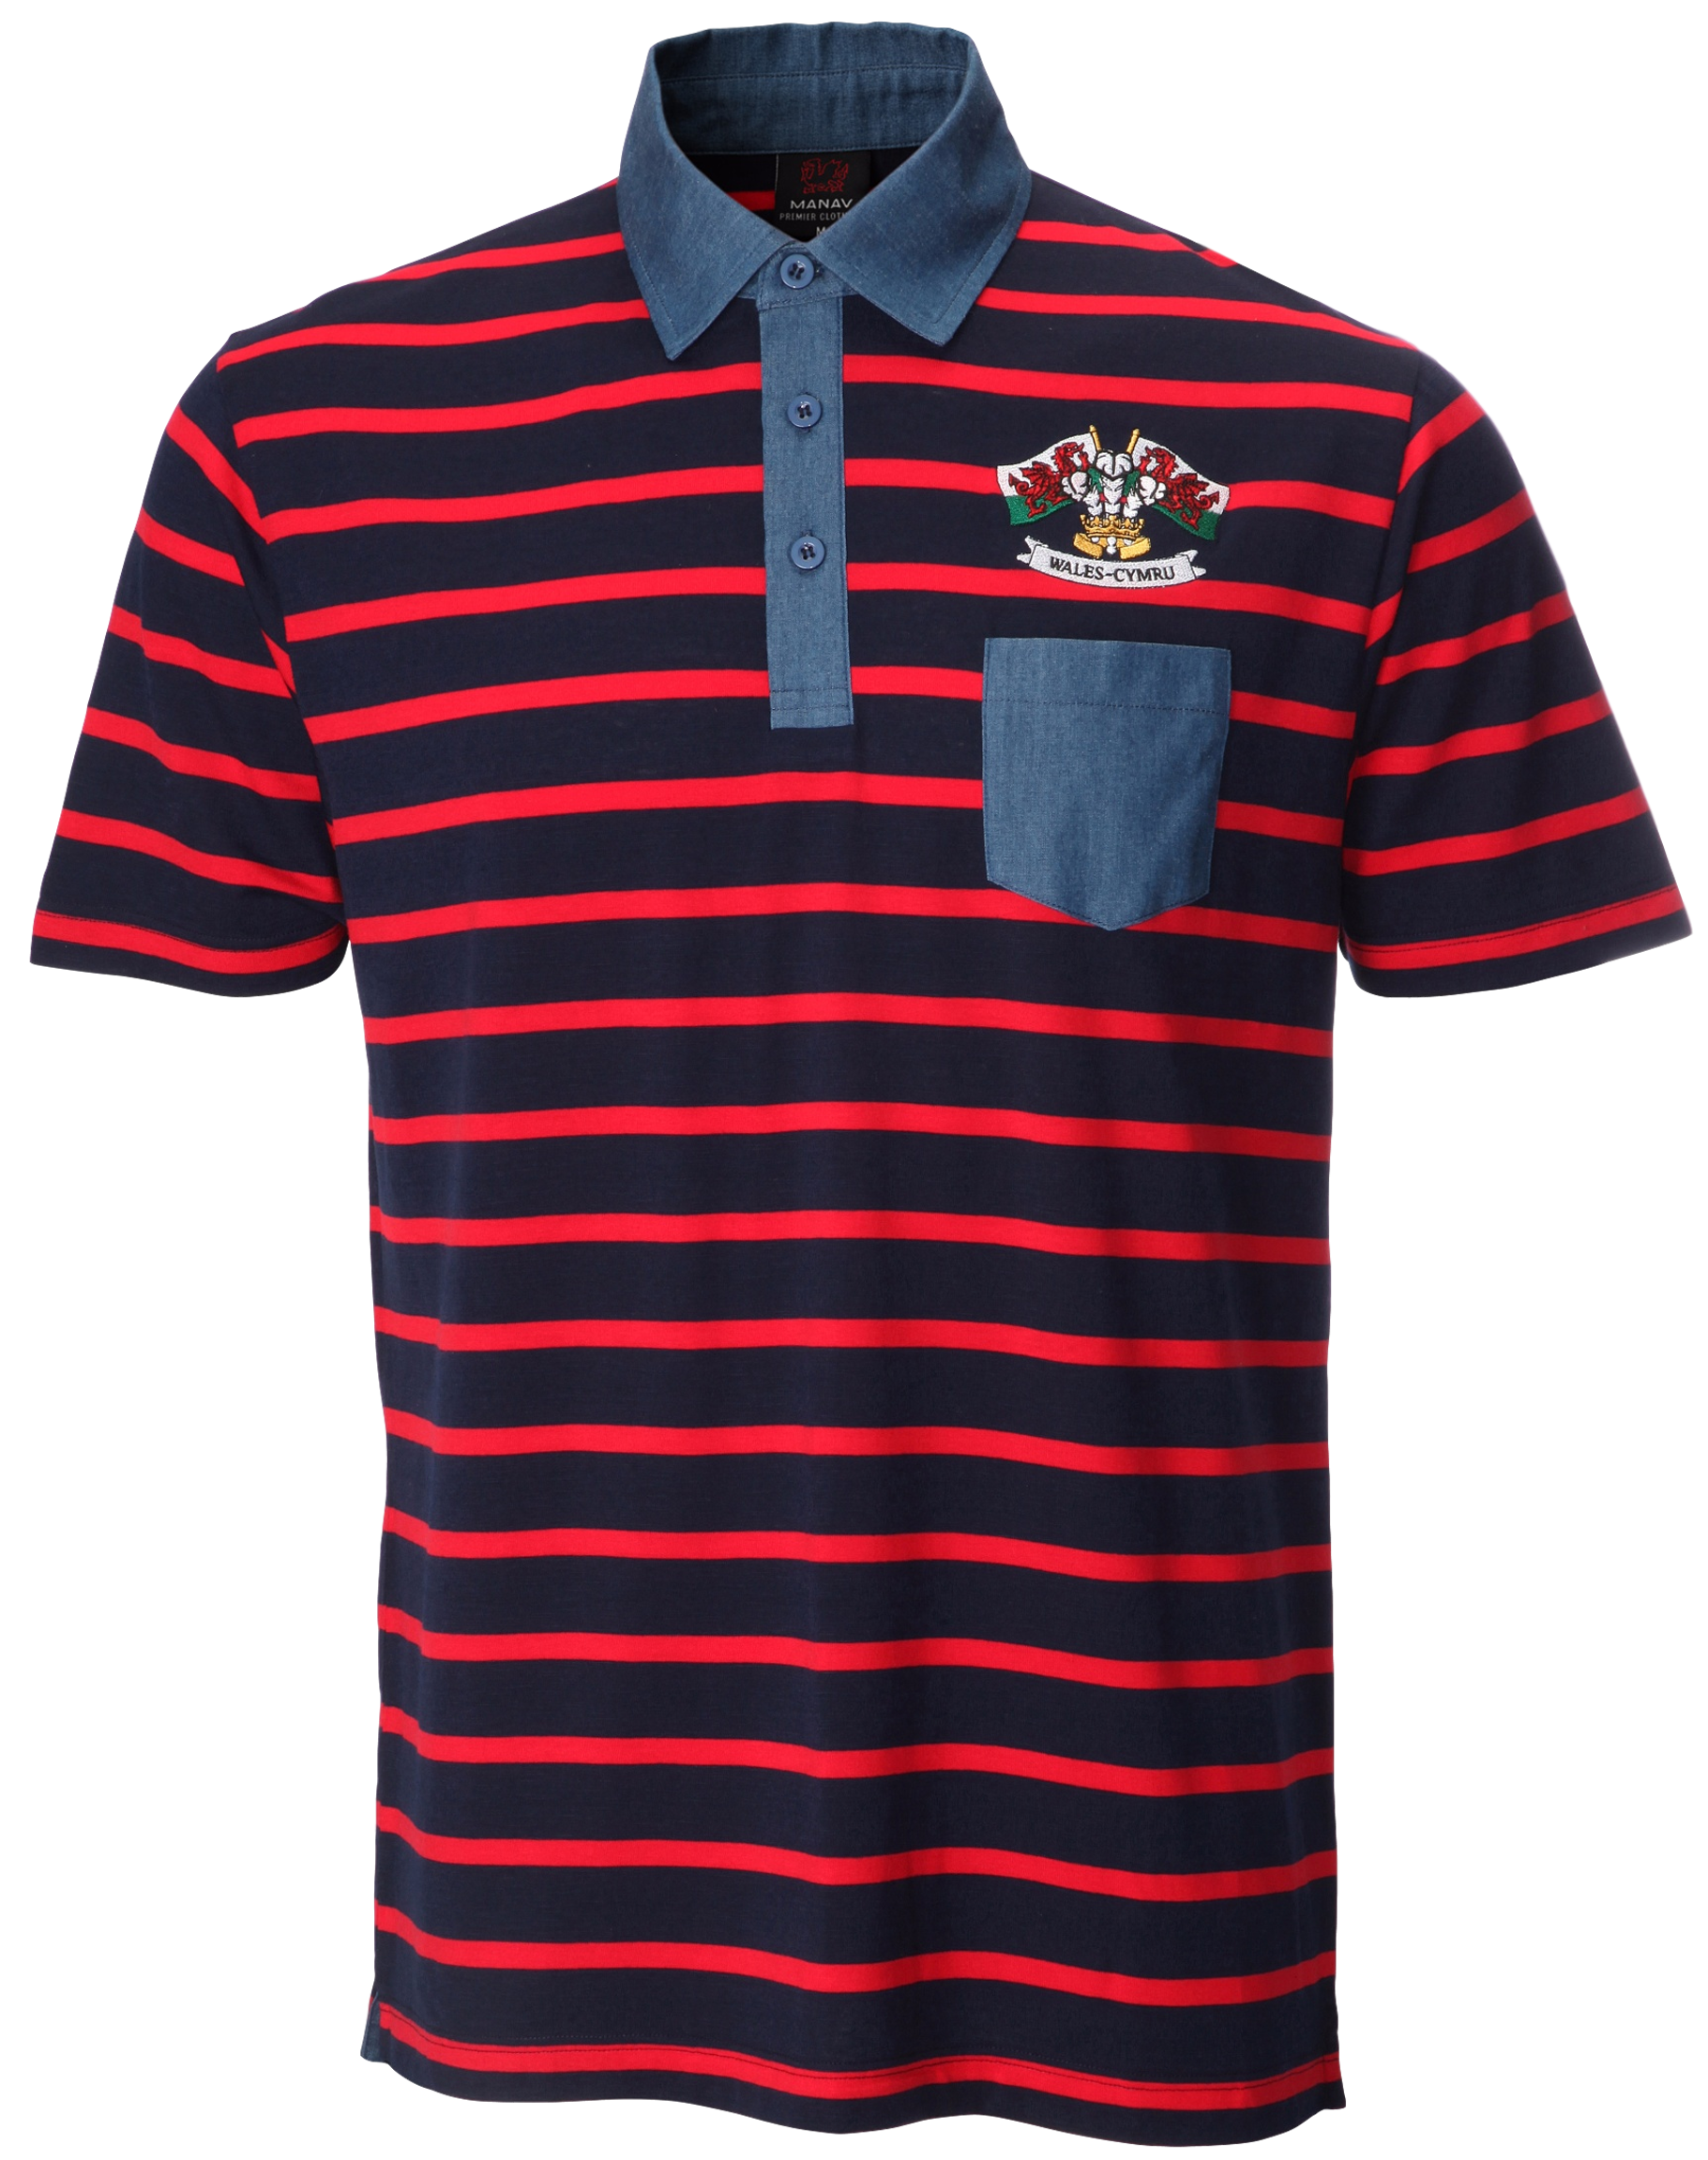 Official Wru Wales Rugby Shirts Rugby Tops Football Tops Welsh